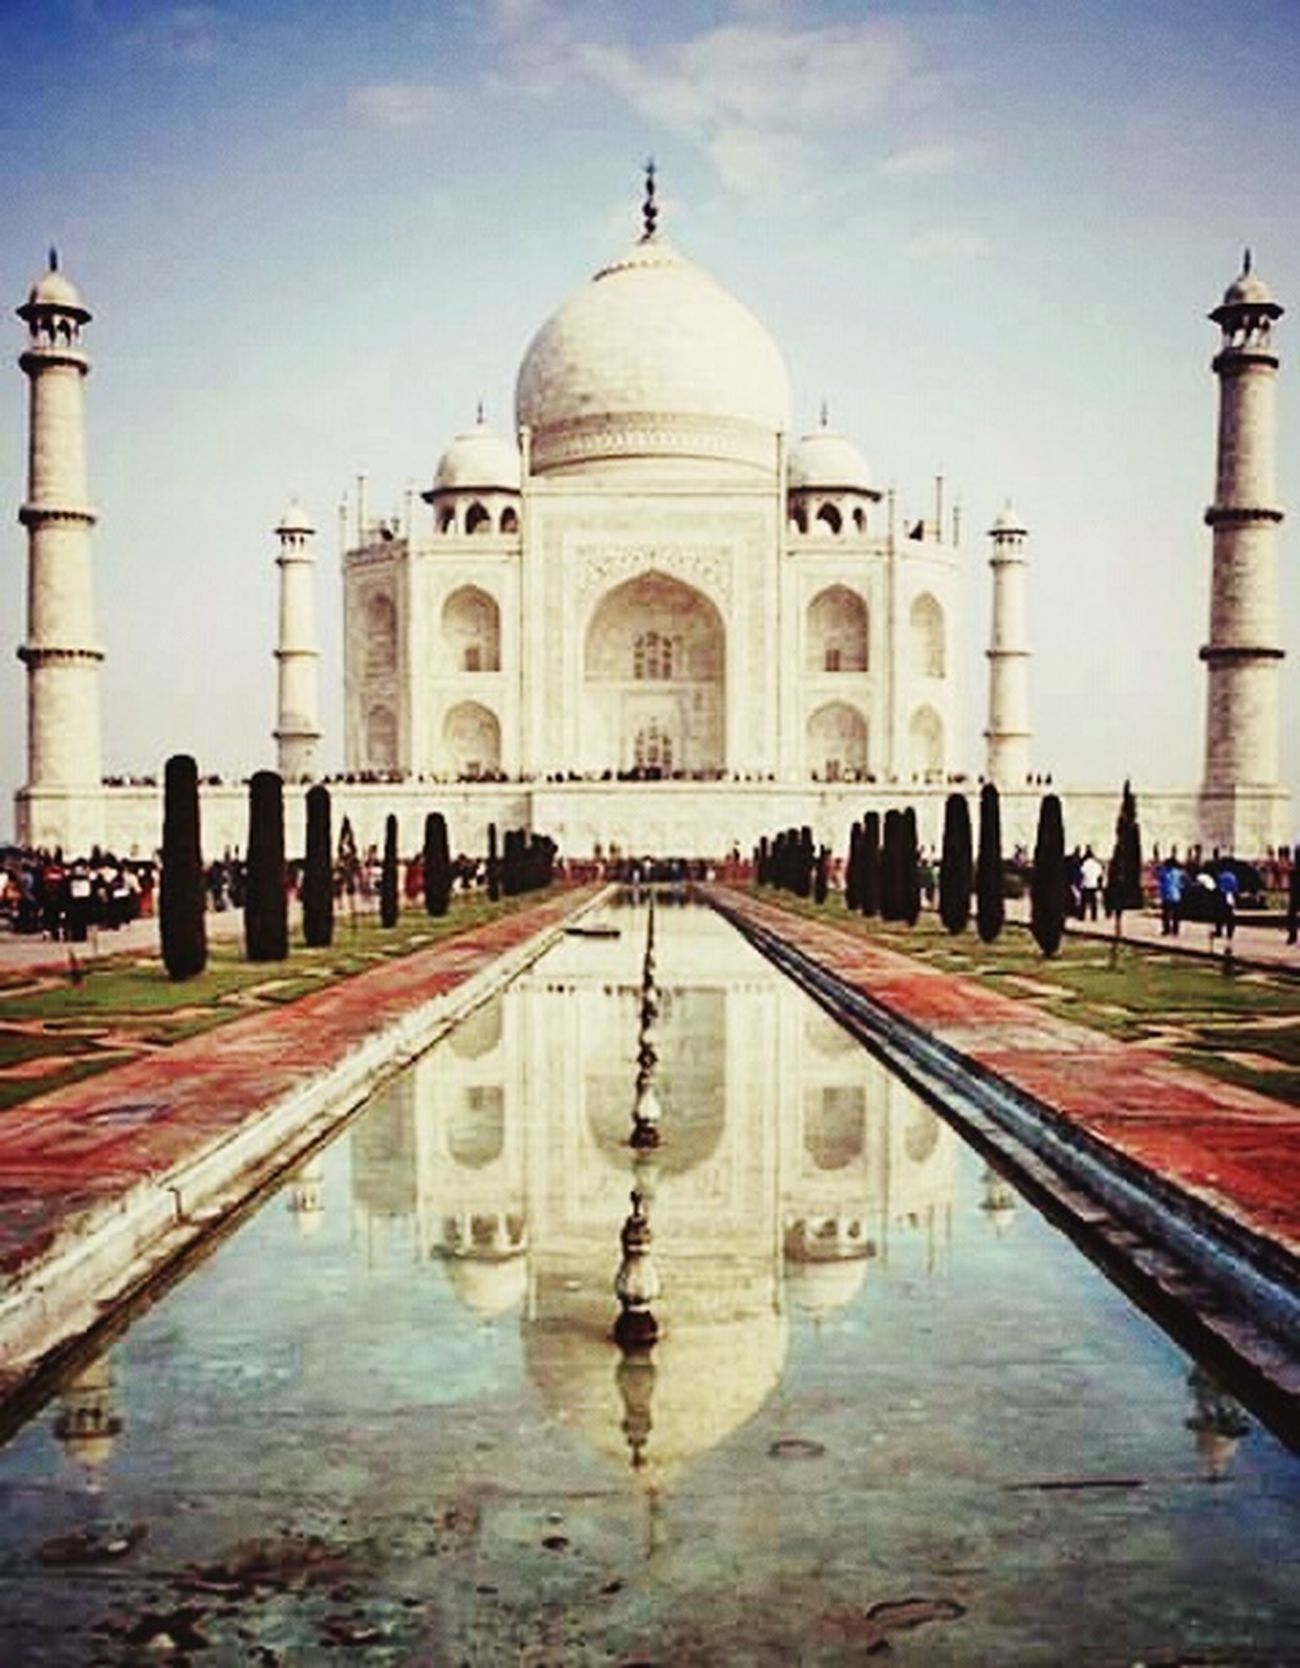 When love we're together. I want bring you and me, together for our love. @tajMahal Tajmahal India Love First Eyeem Photo EyeEm Best Edits Trevelling Celebrating Love! Our Love An Islamic Love Zulhadiri Farish Nuraini n/p: may Allah bless what you want. And its not for me :')